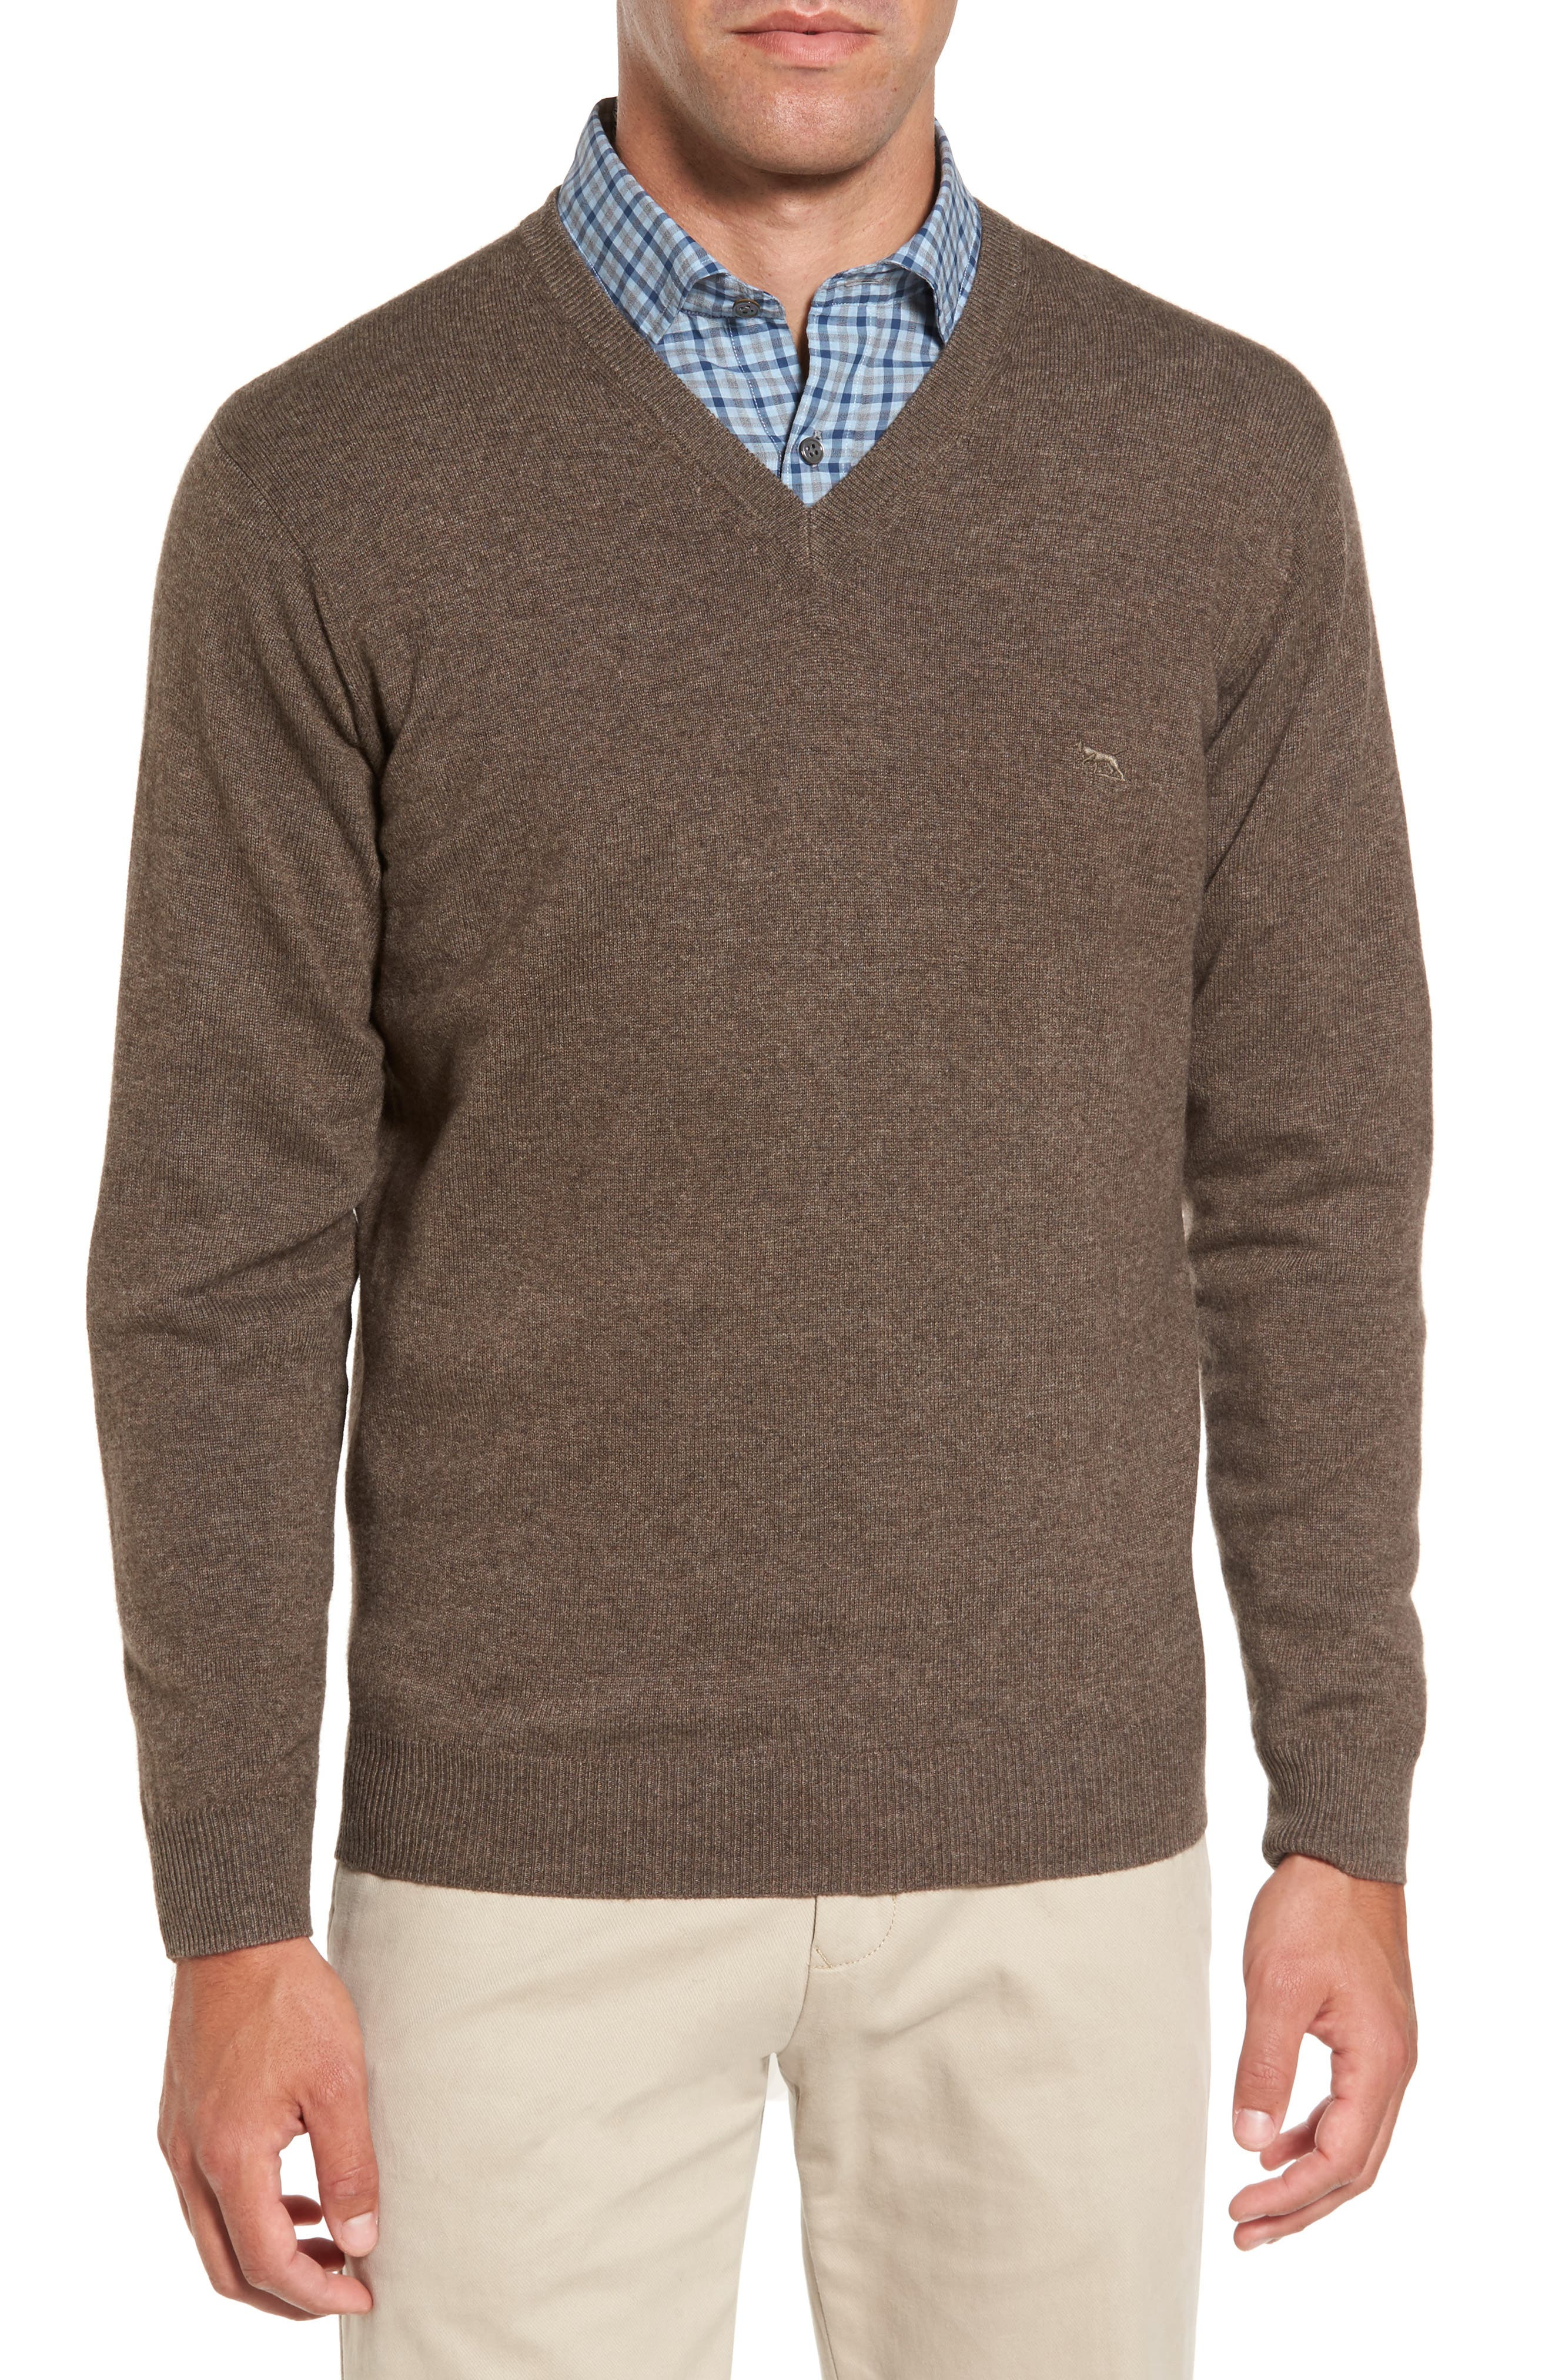 'Inchbonnie' Wool & Cashmere V-Neck Sweater,                             Main thumbnail 1, color,                             218